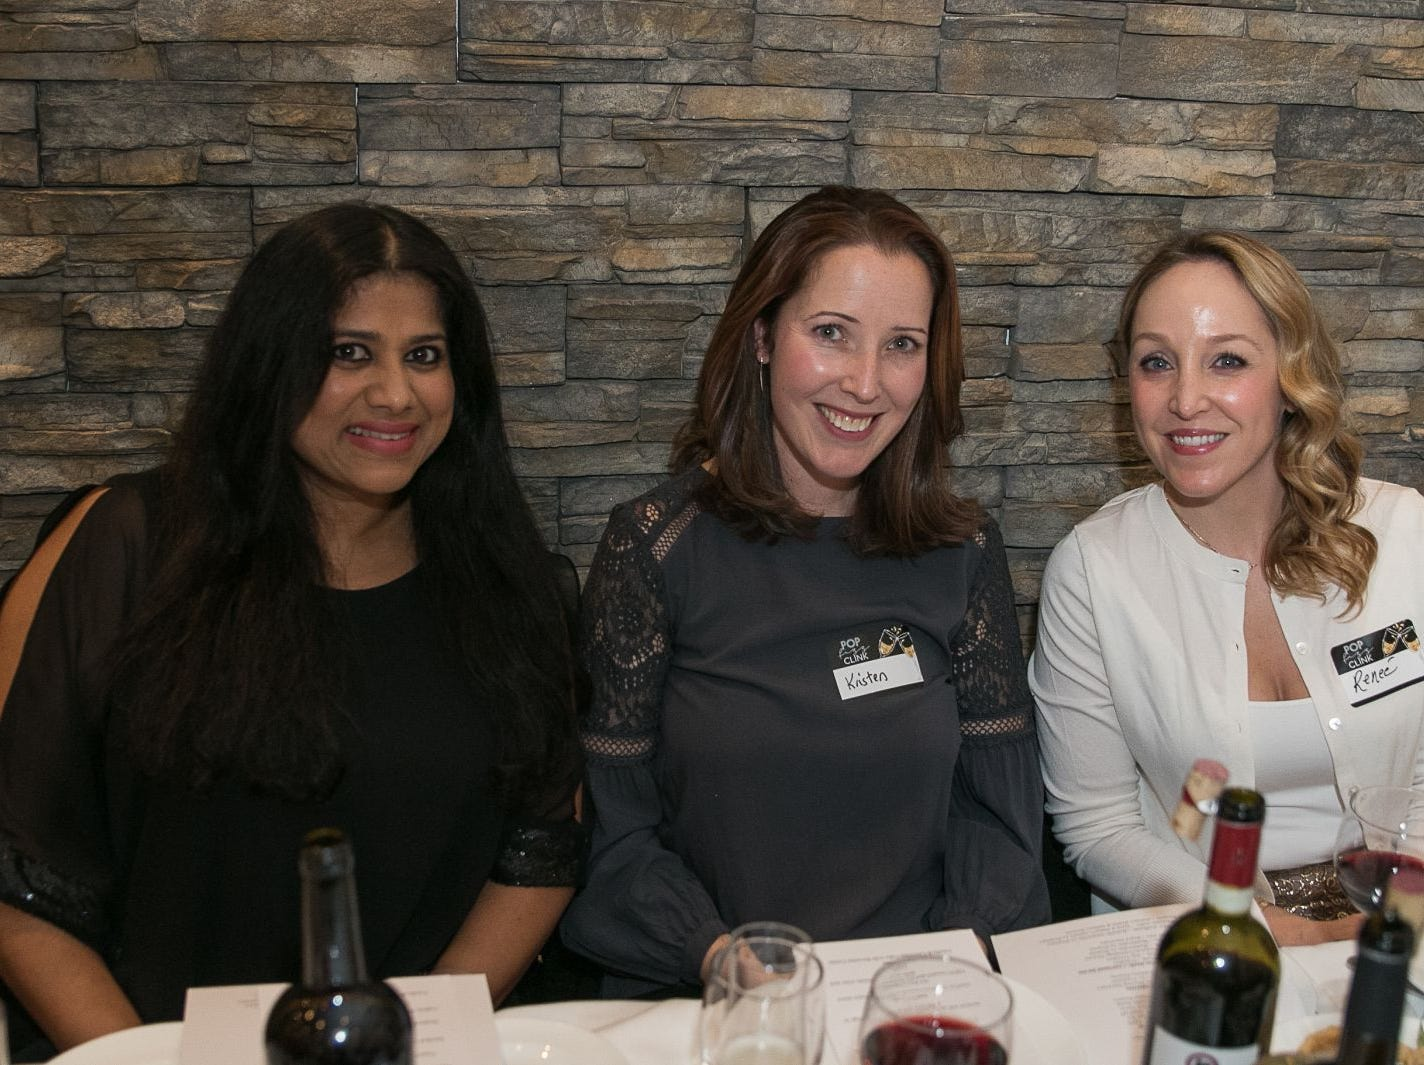 The Saddle River Valley Junior Woman's Club held an inductee dinnerfor incoming members at Bellisimo Restaurante in Montvale. 01/23/2019